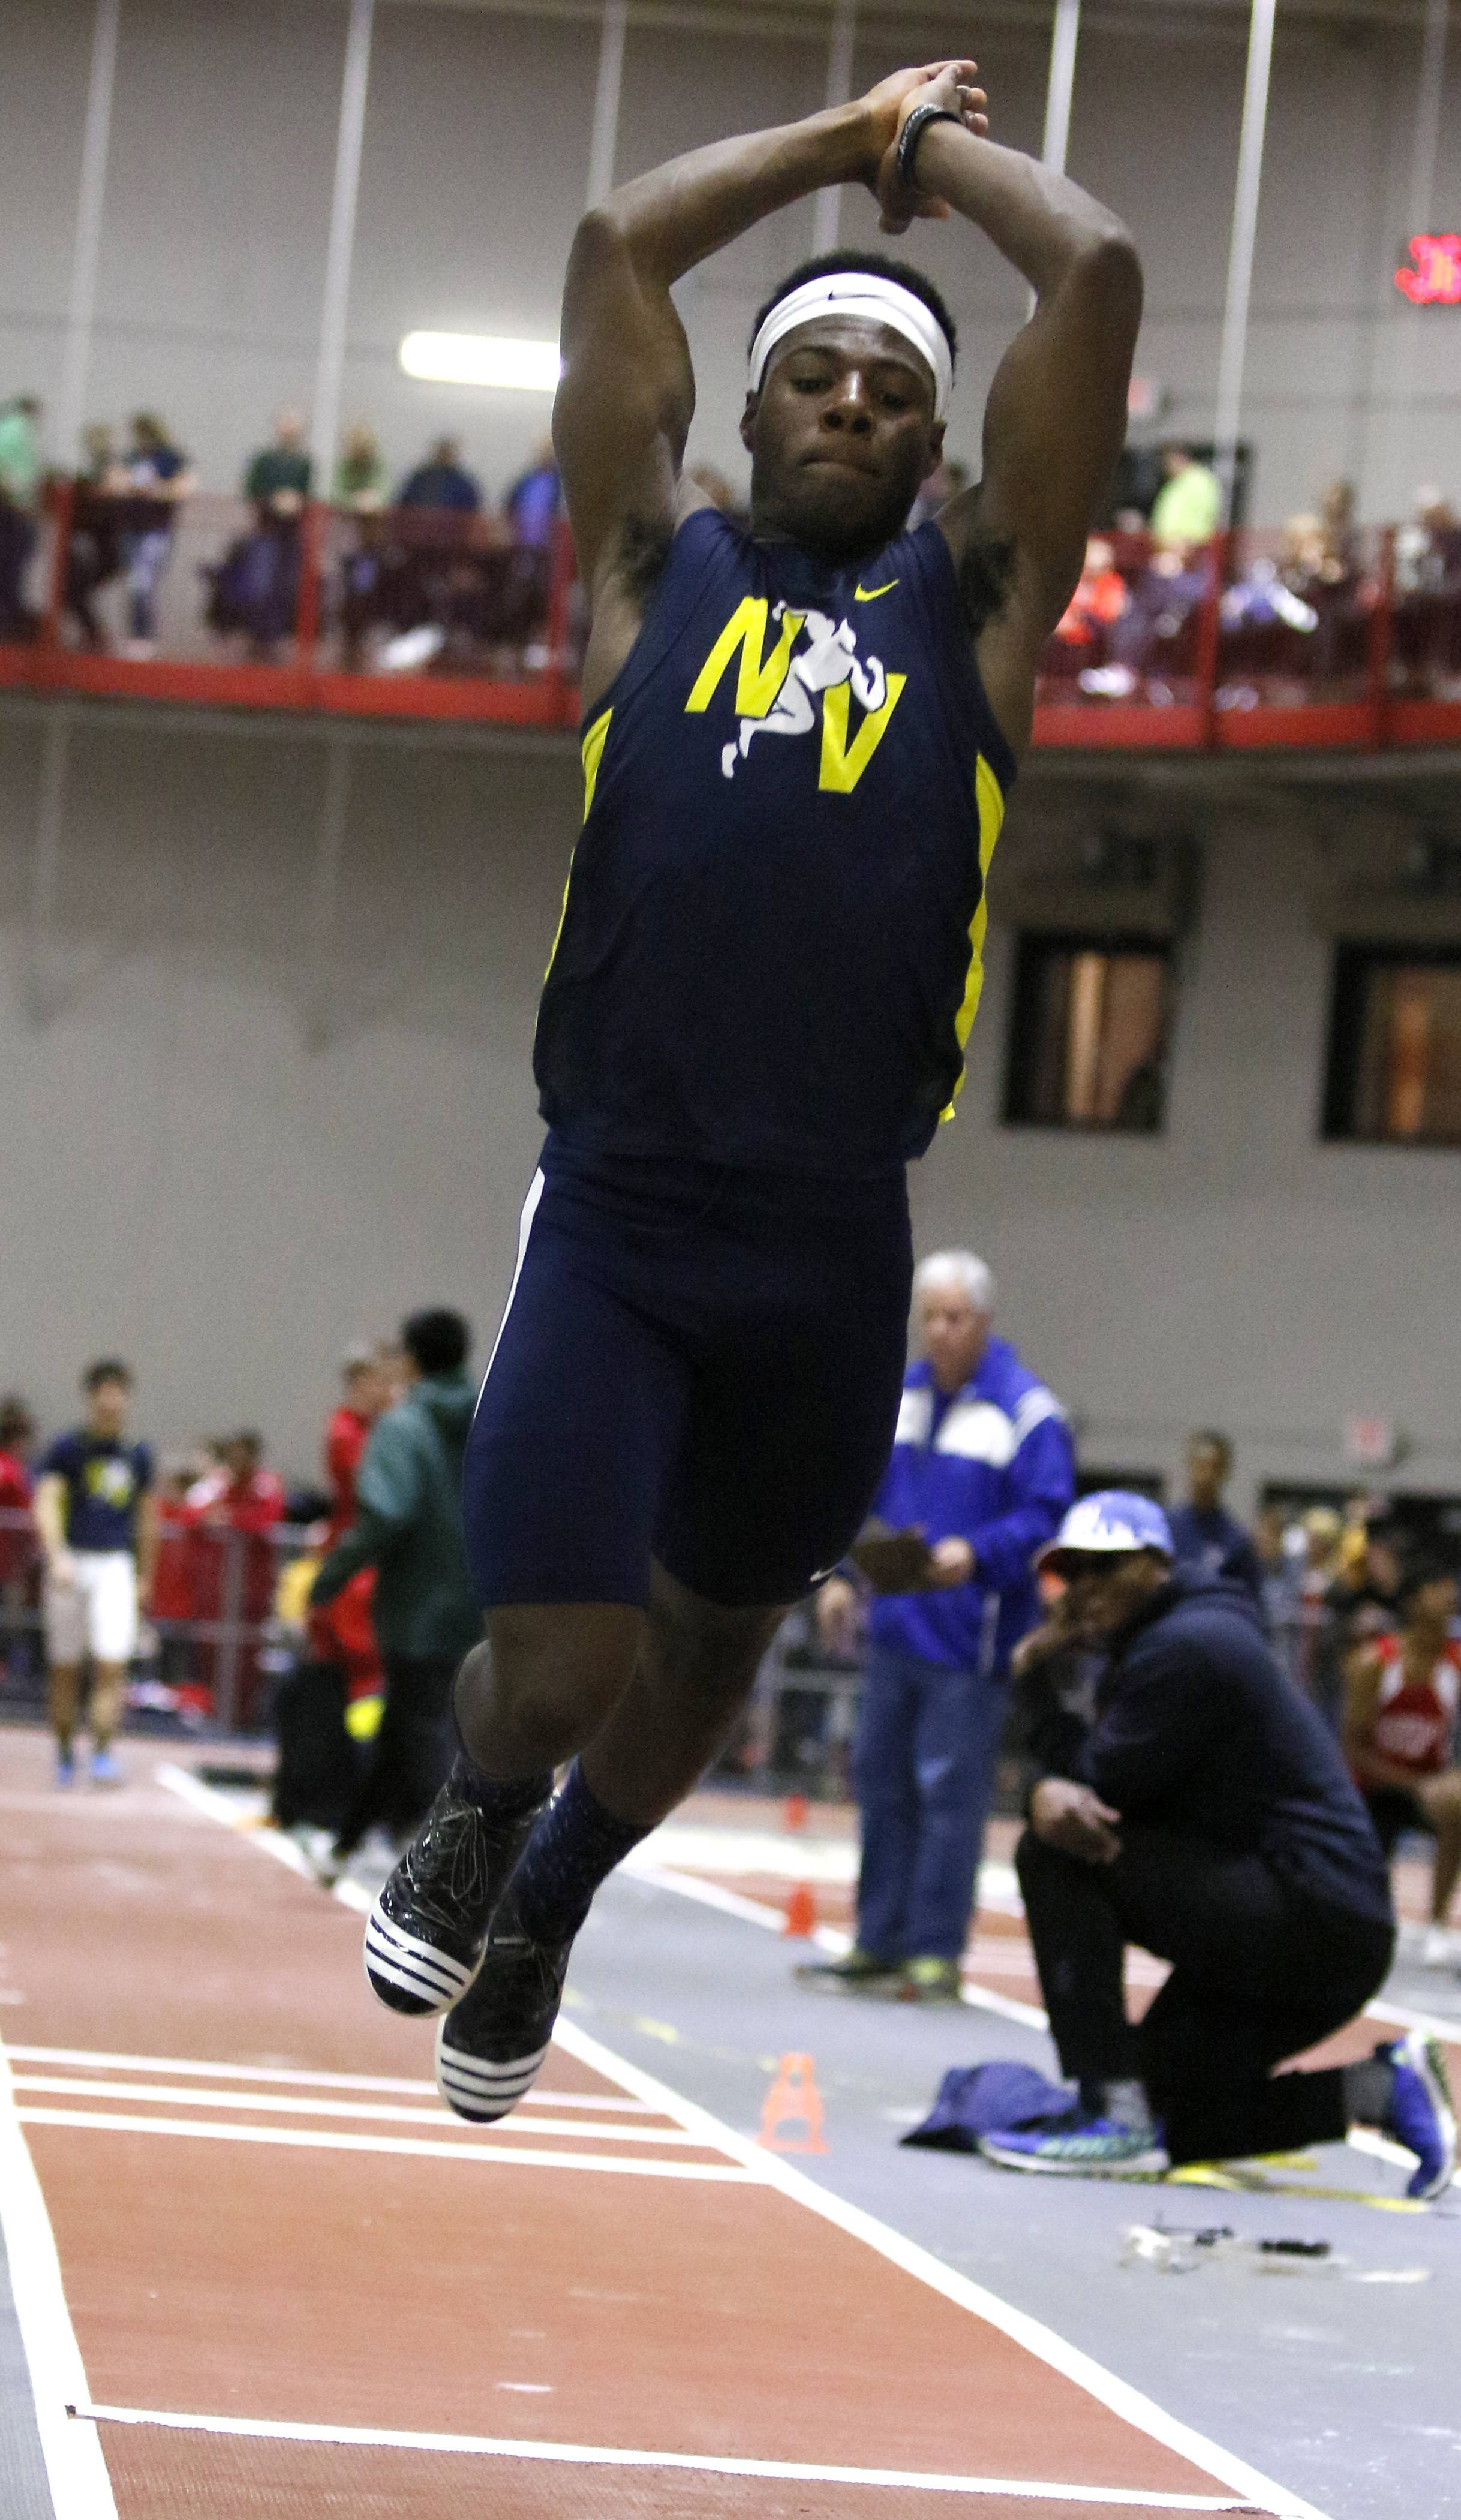 Neuqua Valley's McKenzie Mitchell competes in the triple jump at the DuPage Valley Conference boys indoor track meet at North Central College.